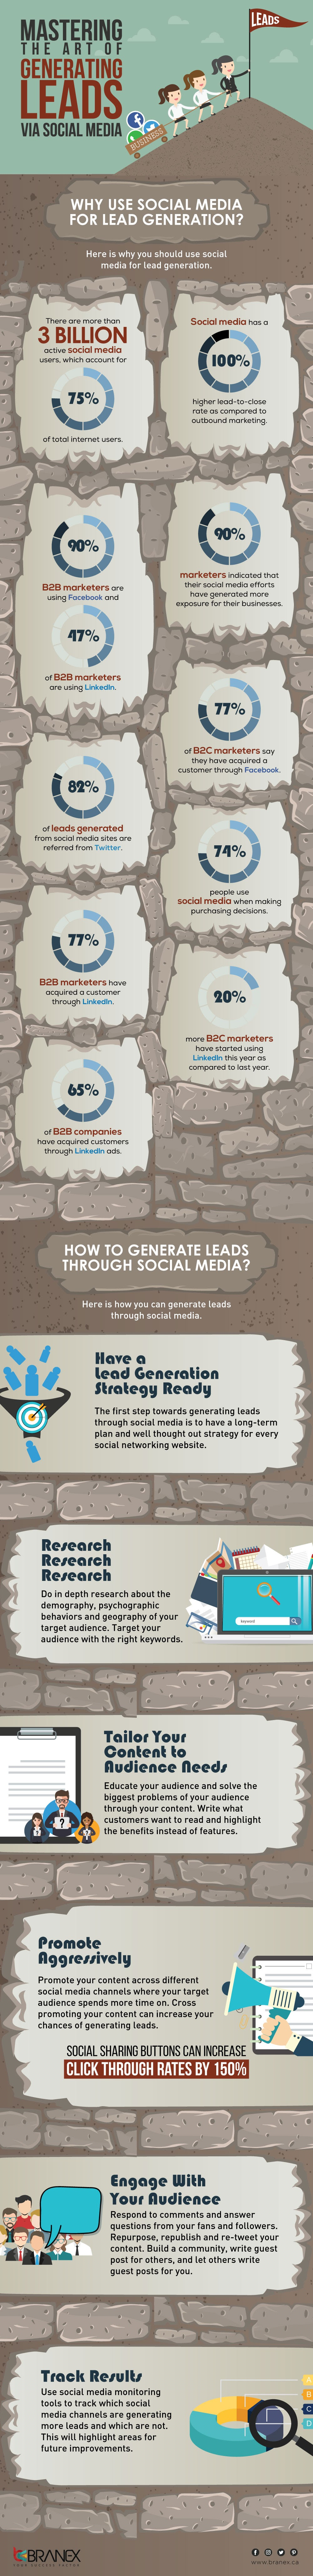 How To Generate Leads Using Social Media #infographic